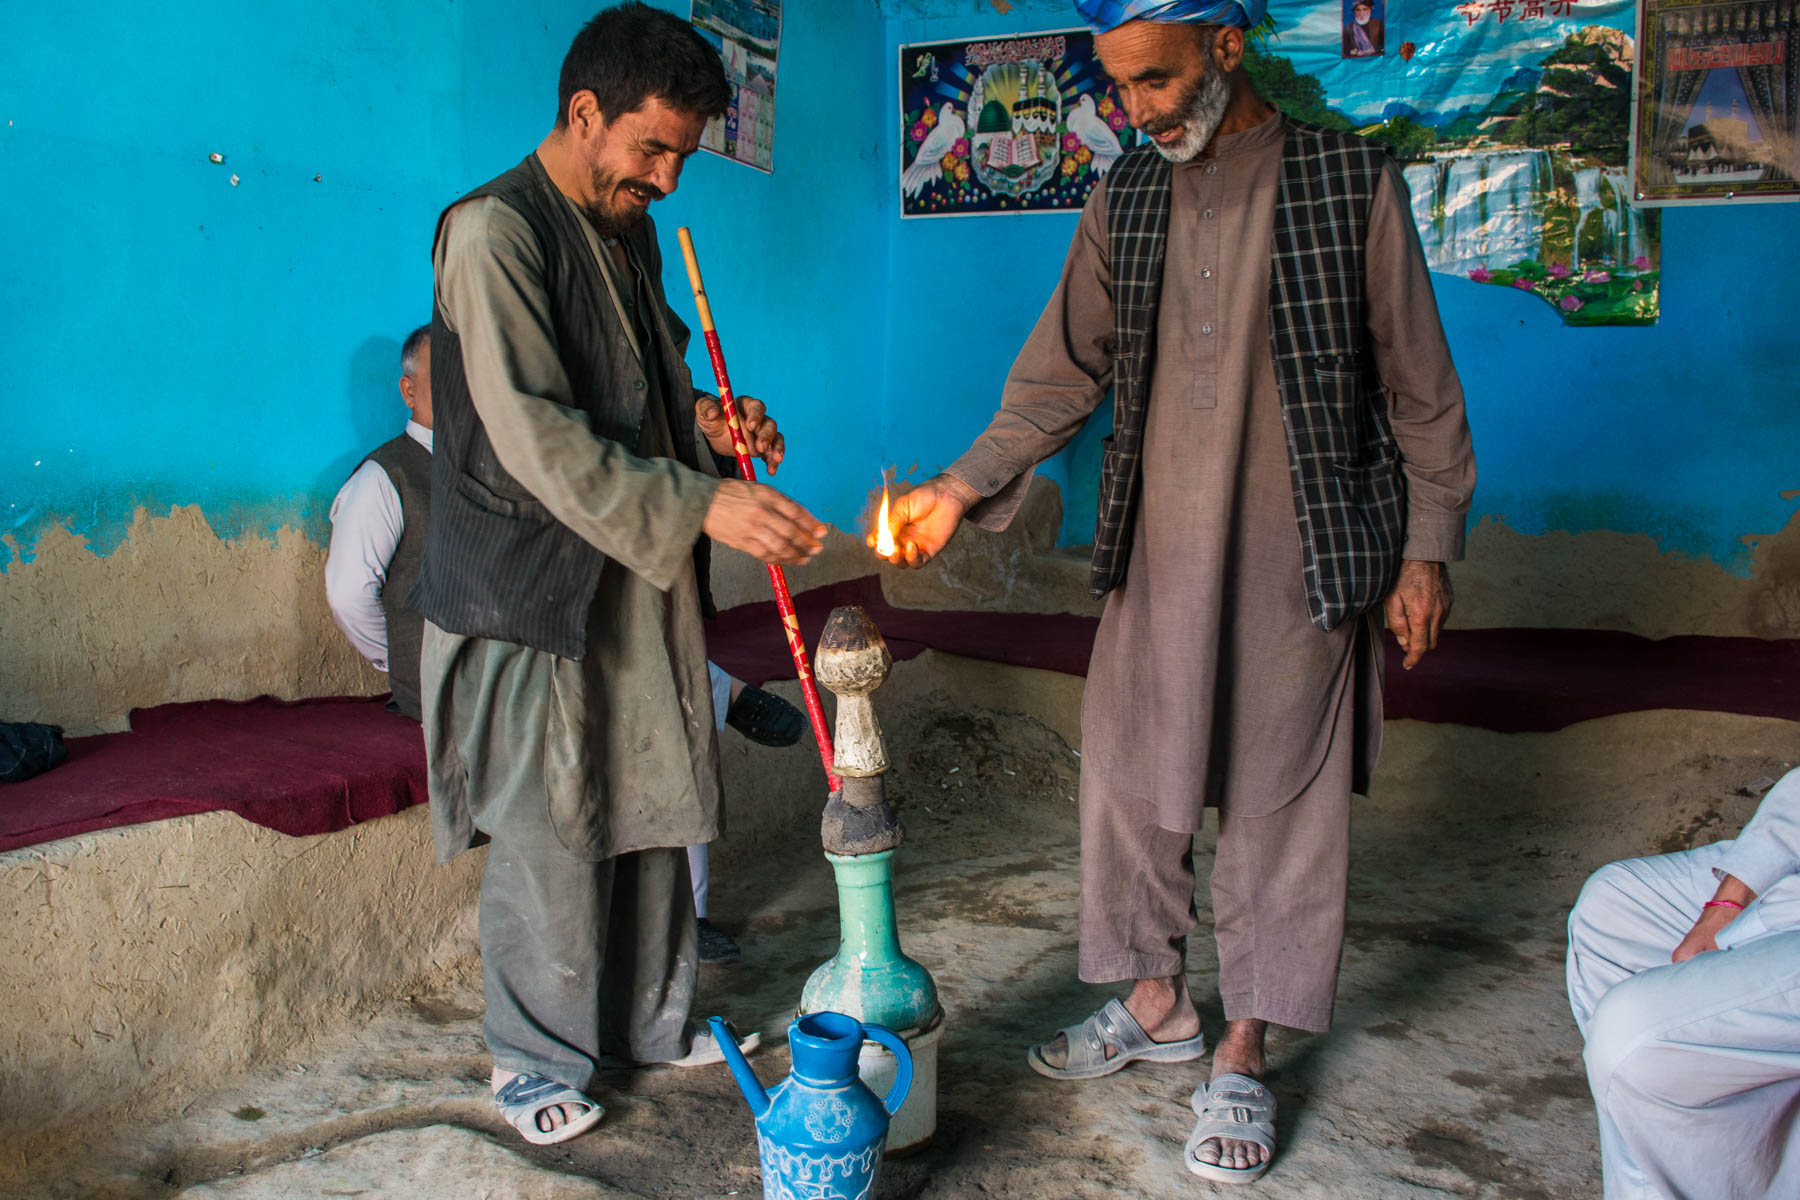 Lighting the bong in Balkh, Afghanistan - Lost With Purpose